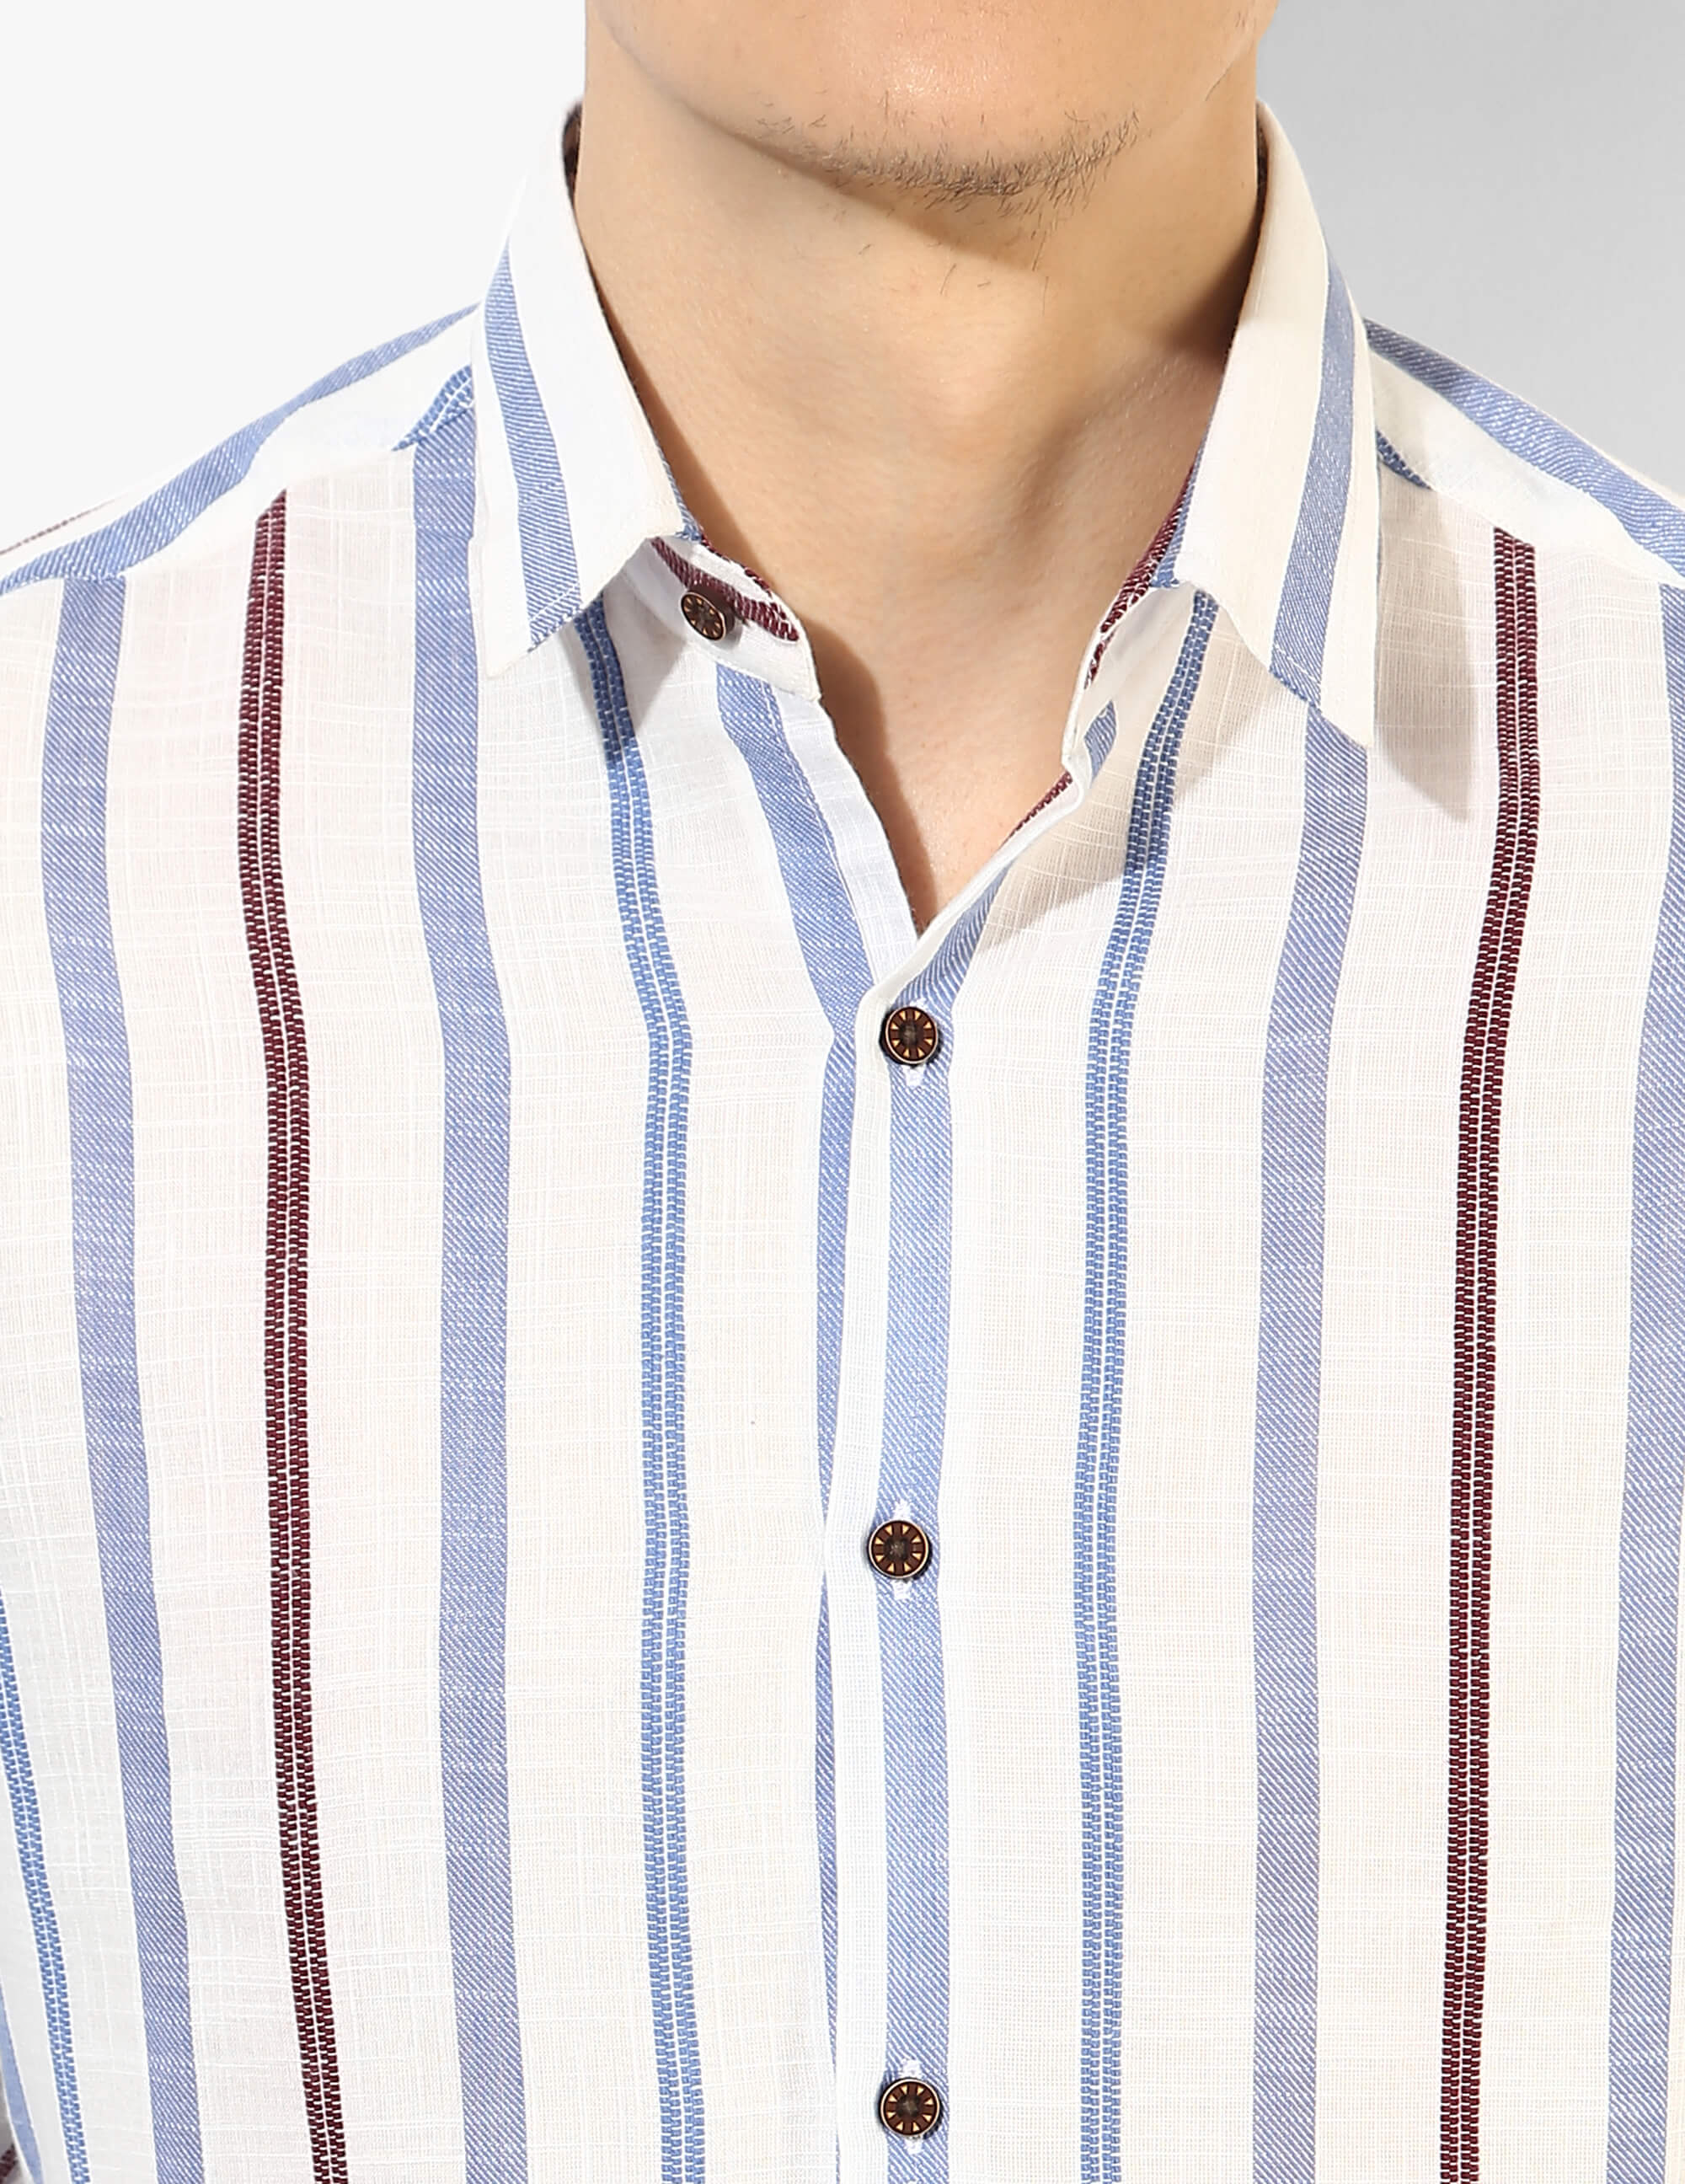 Voguish White Striped Shirt - Tuck N Stitch